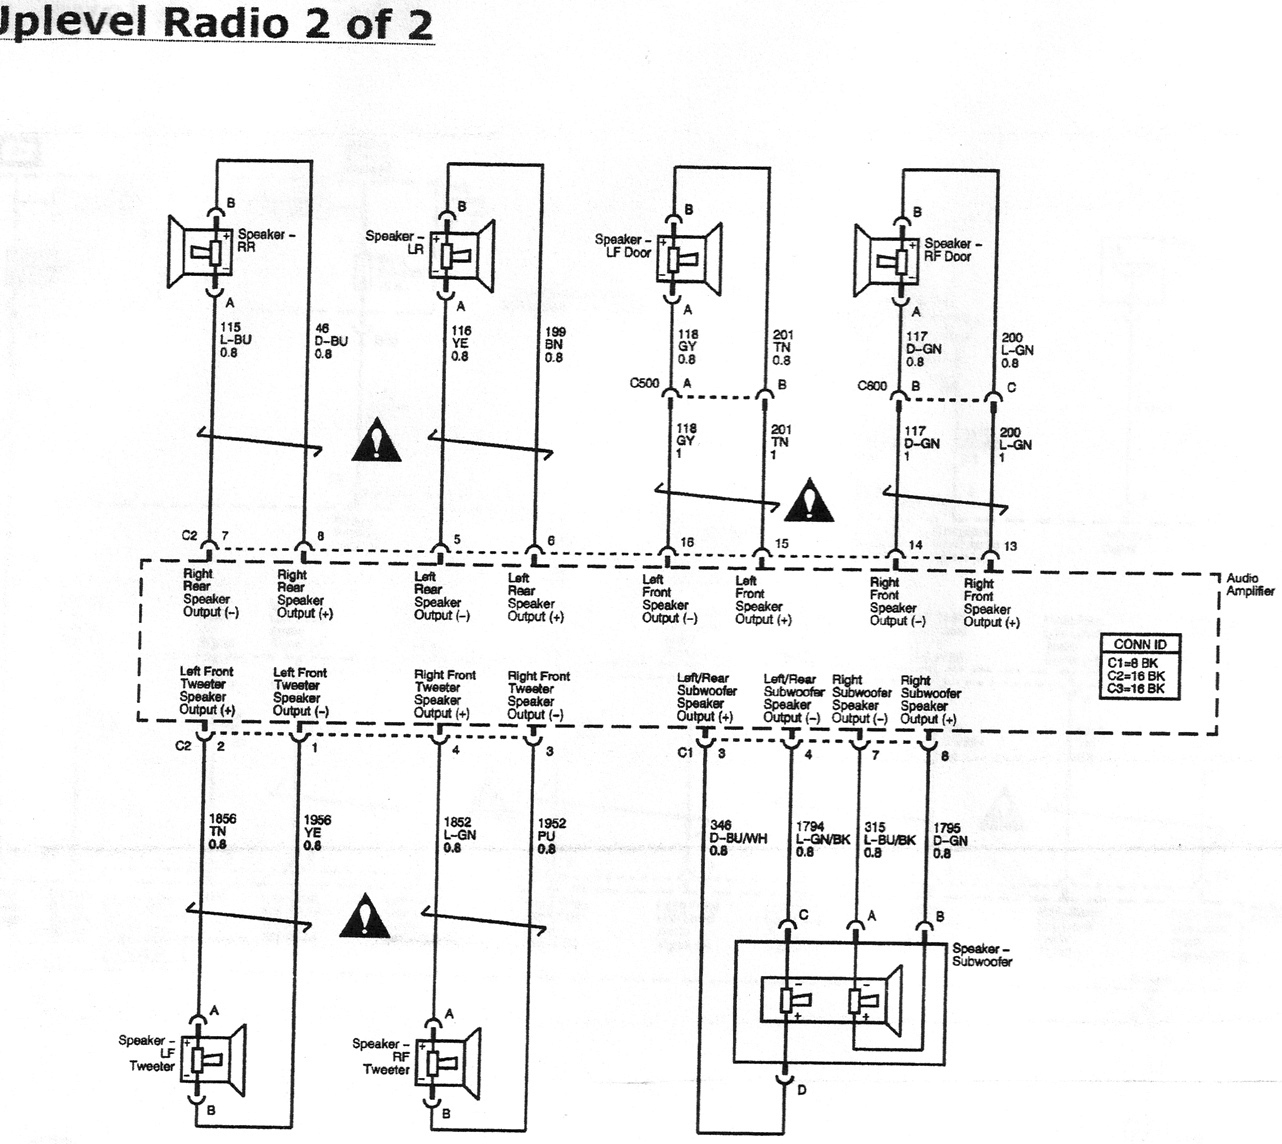 29802 monsoon amp speaker replacement monsoon_wiring_diagram_page_2 monsoon amp and speaker replacement saturn sky forums saturn firebird monsoon wiring diagram at soozxer.org